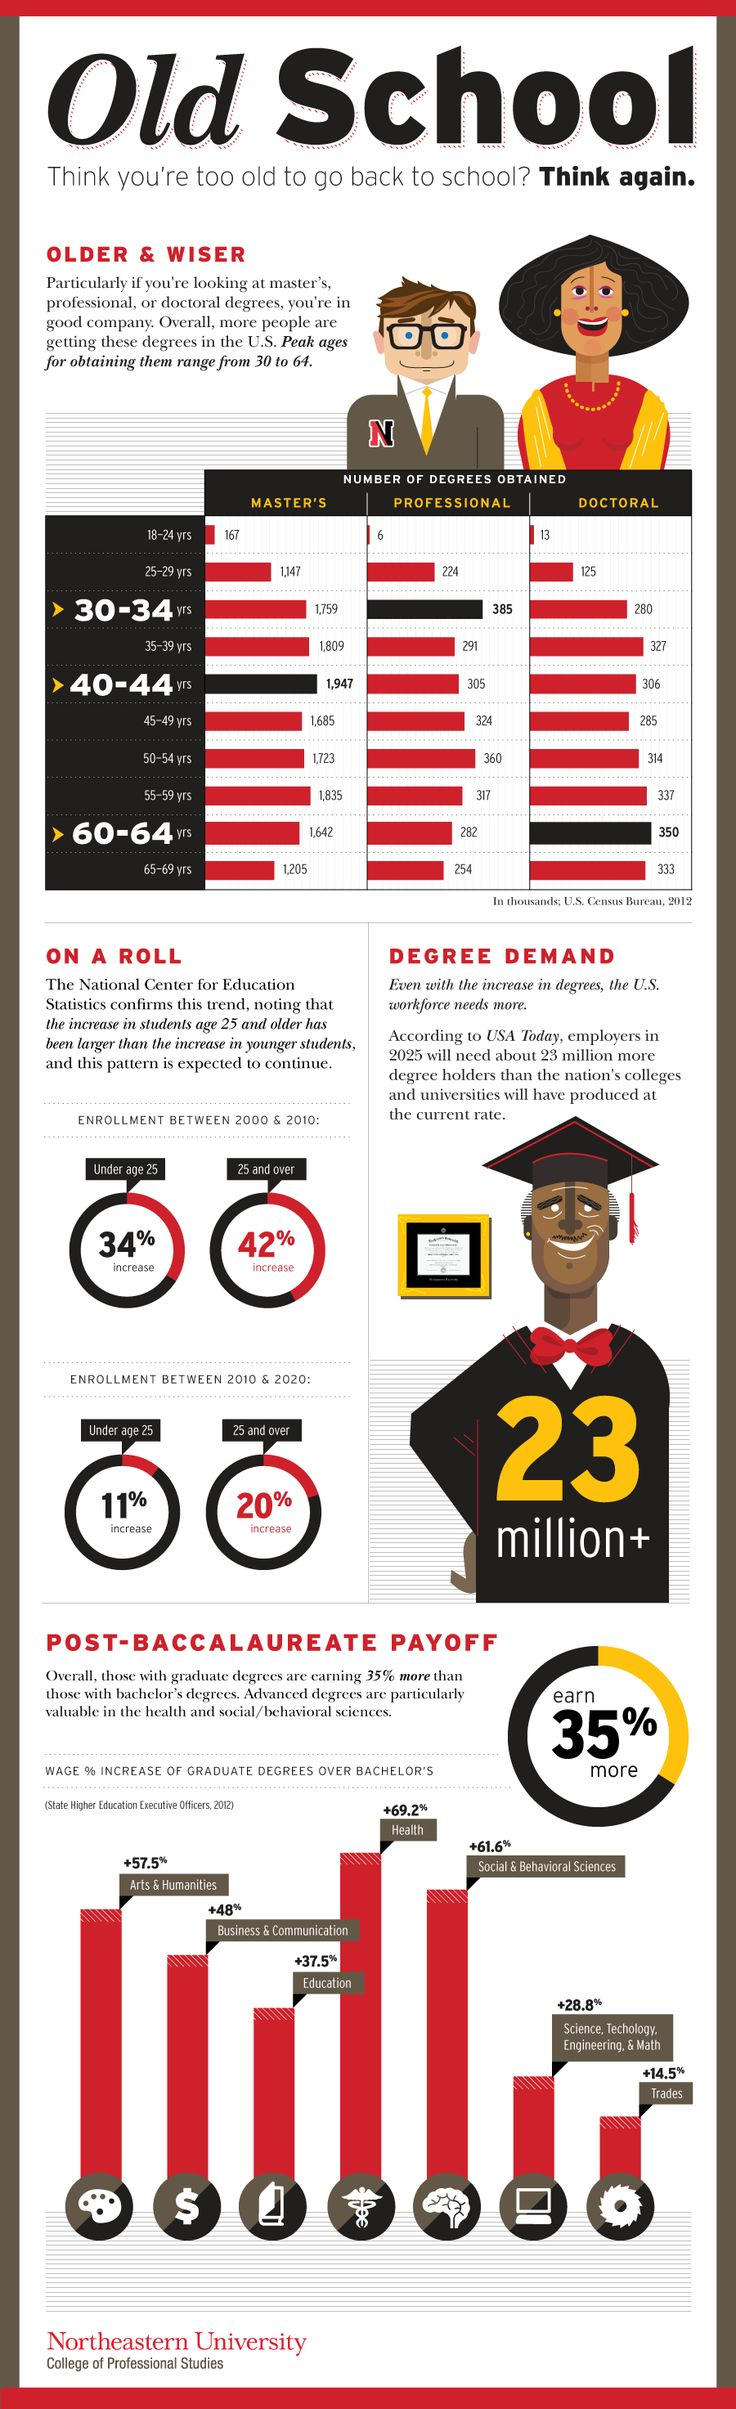 Old School. Think You're Too Old to Go Back to School? Think Again! Employers in 2025 are likely to need about 23 million more degree holders than colleges will have produced at the current rate.